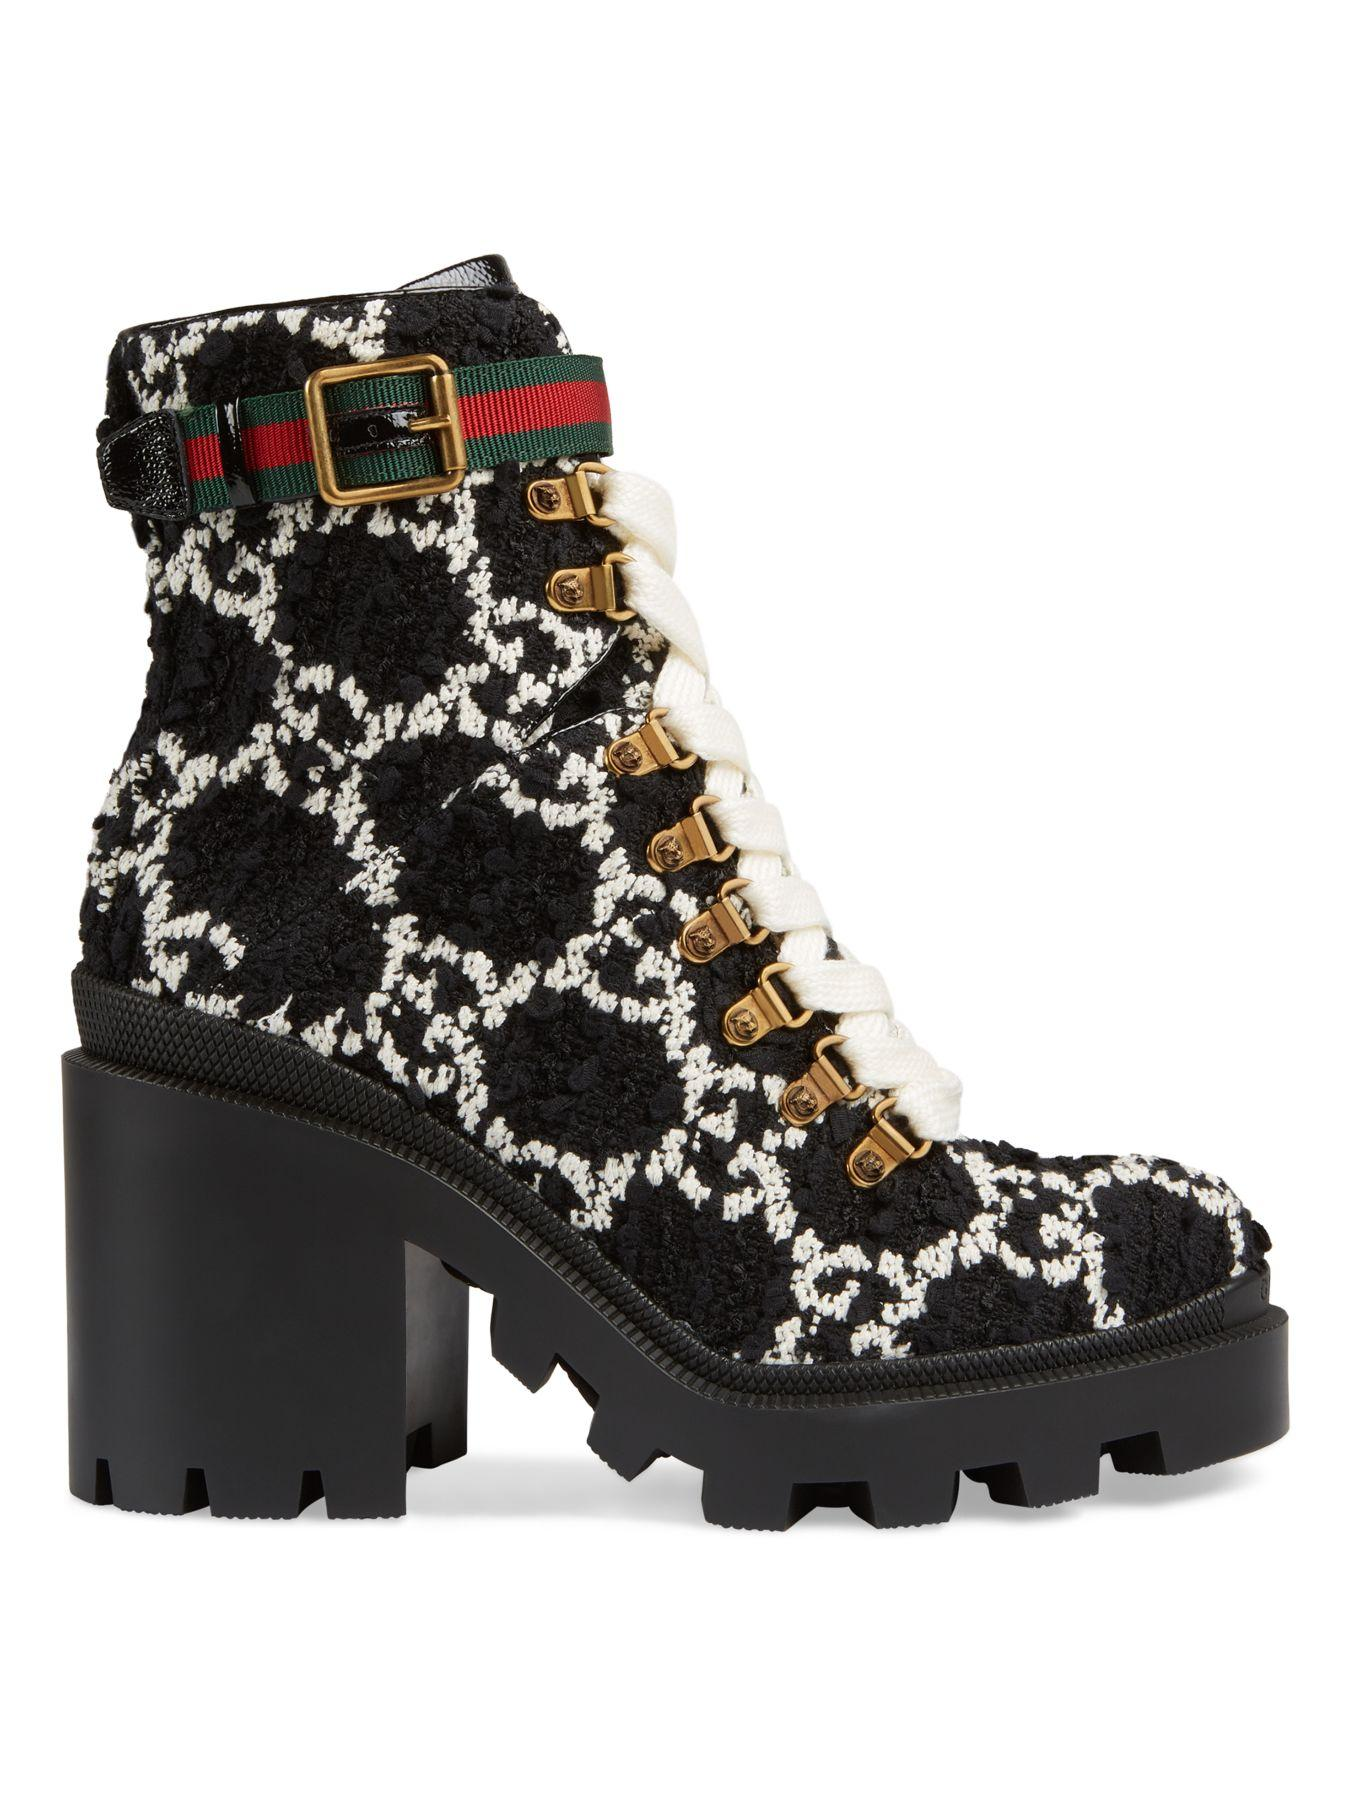 Gucci GG Tweed Ankle Boots in Nero